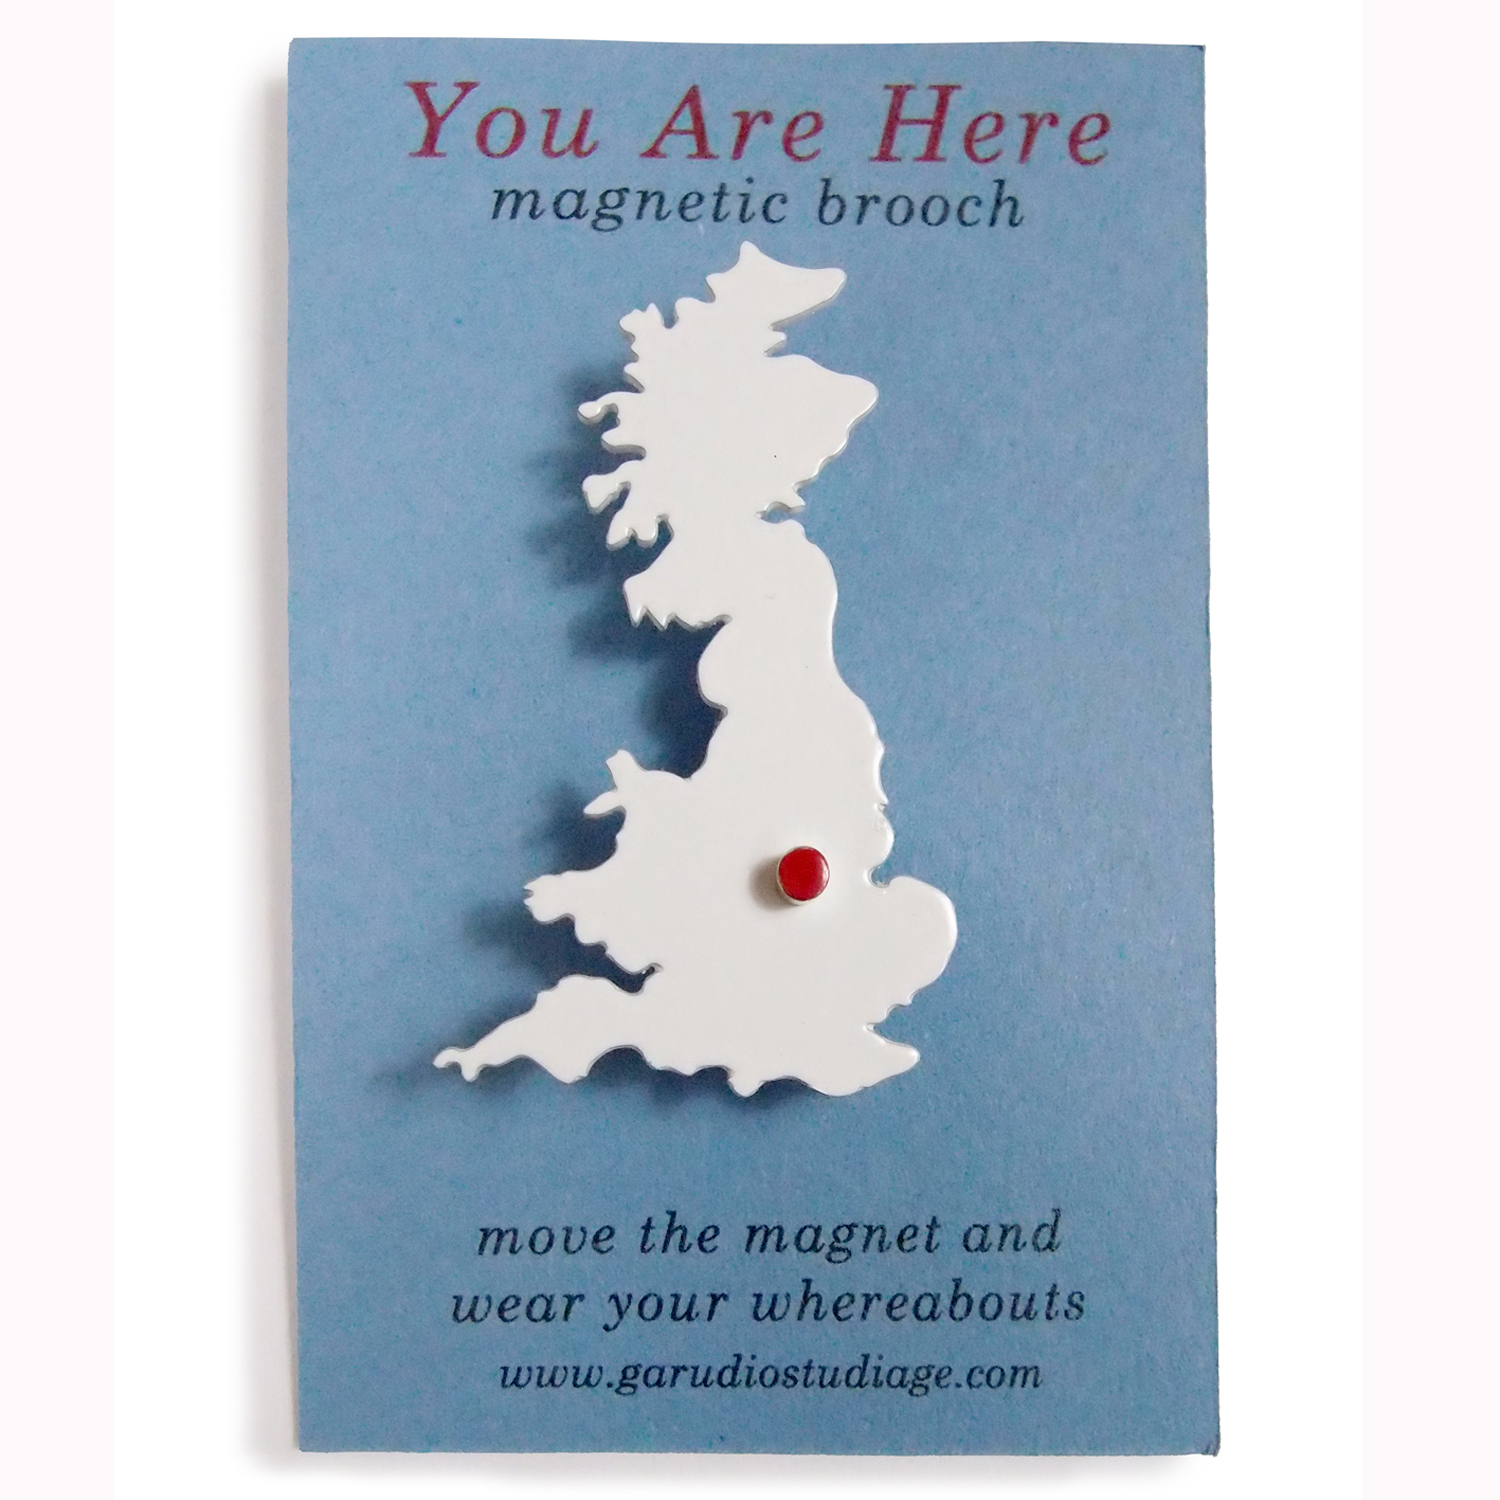 You are here pin brooch on card thumbnail 2b.jpg